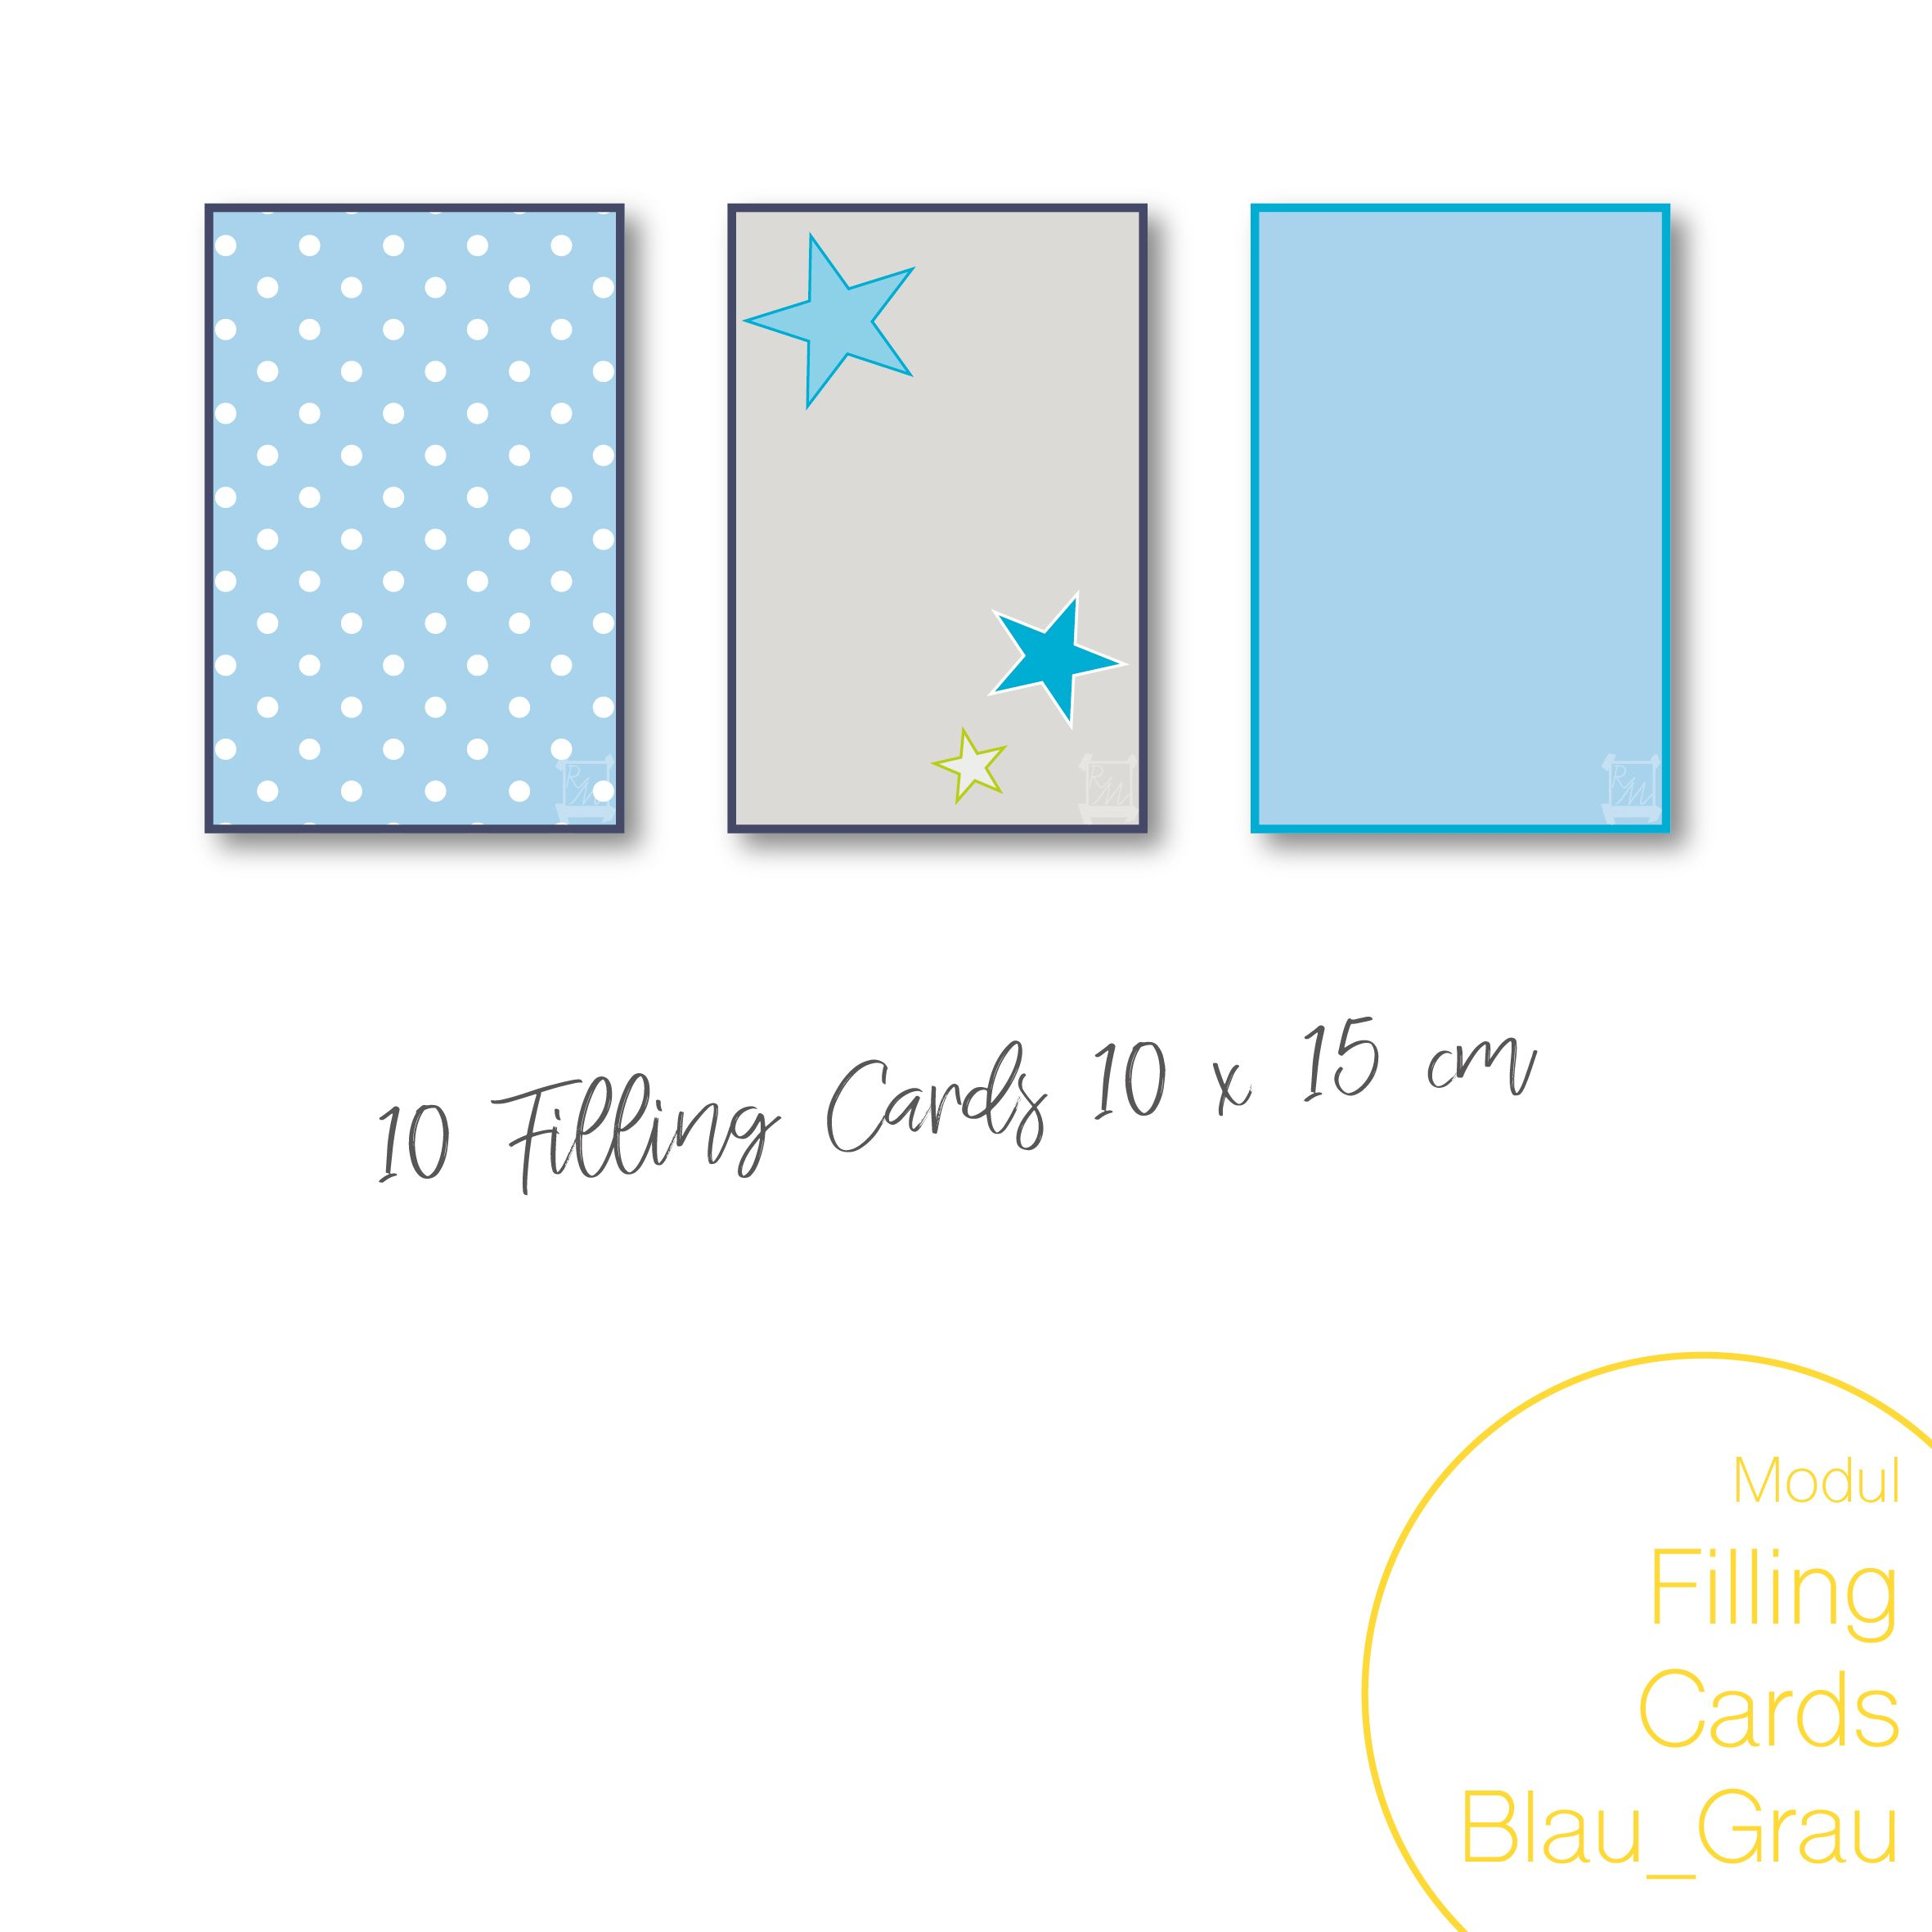 Dein Remember-Me Modul Filling-Cards Gross Blau_Grau